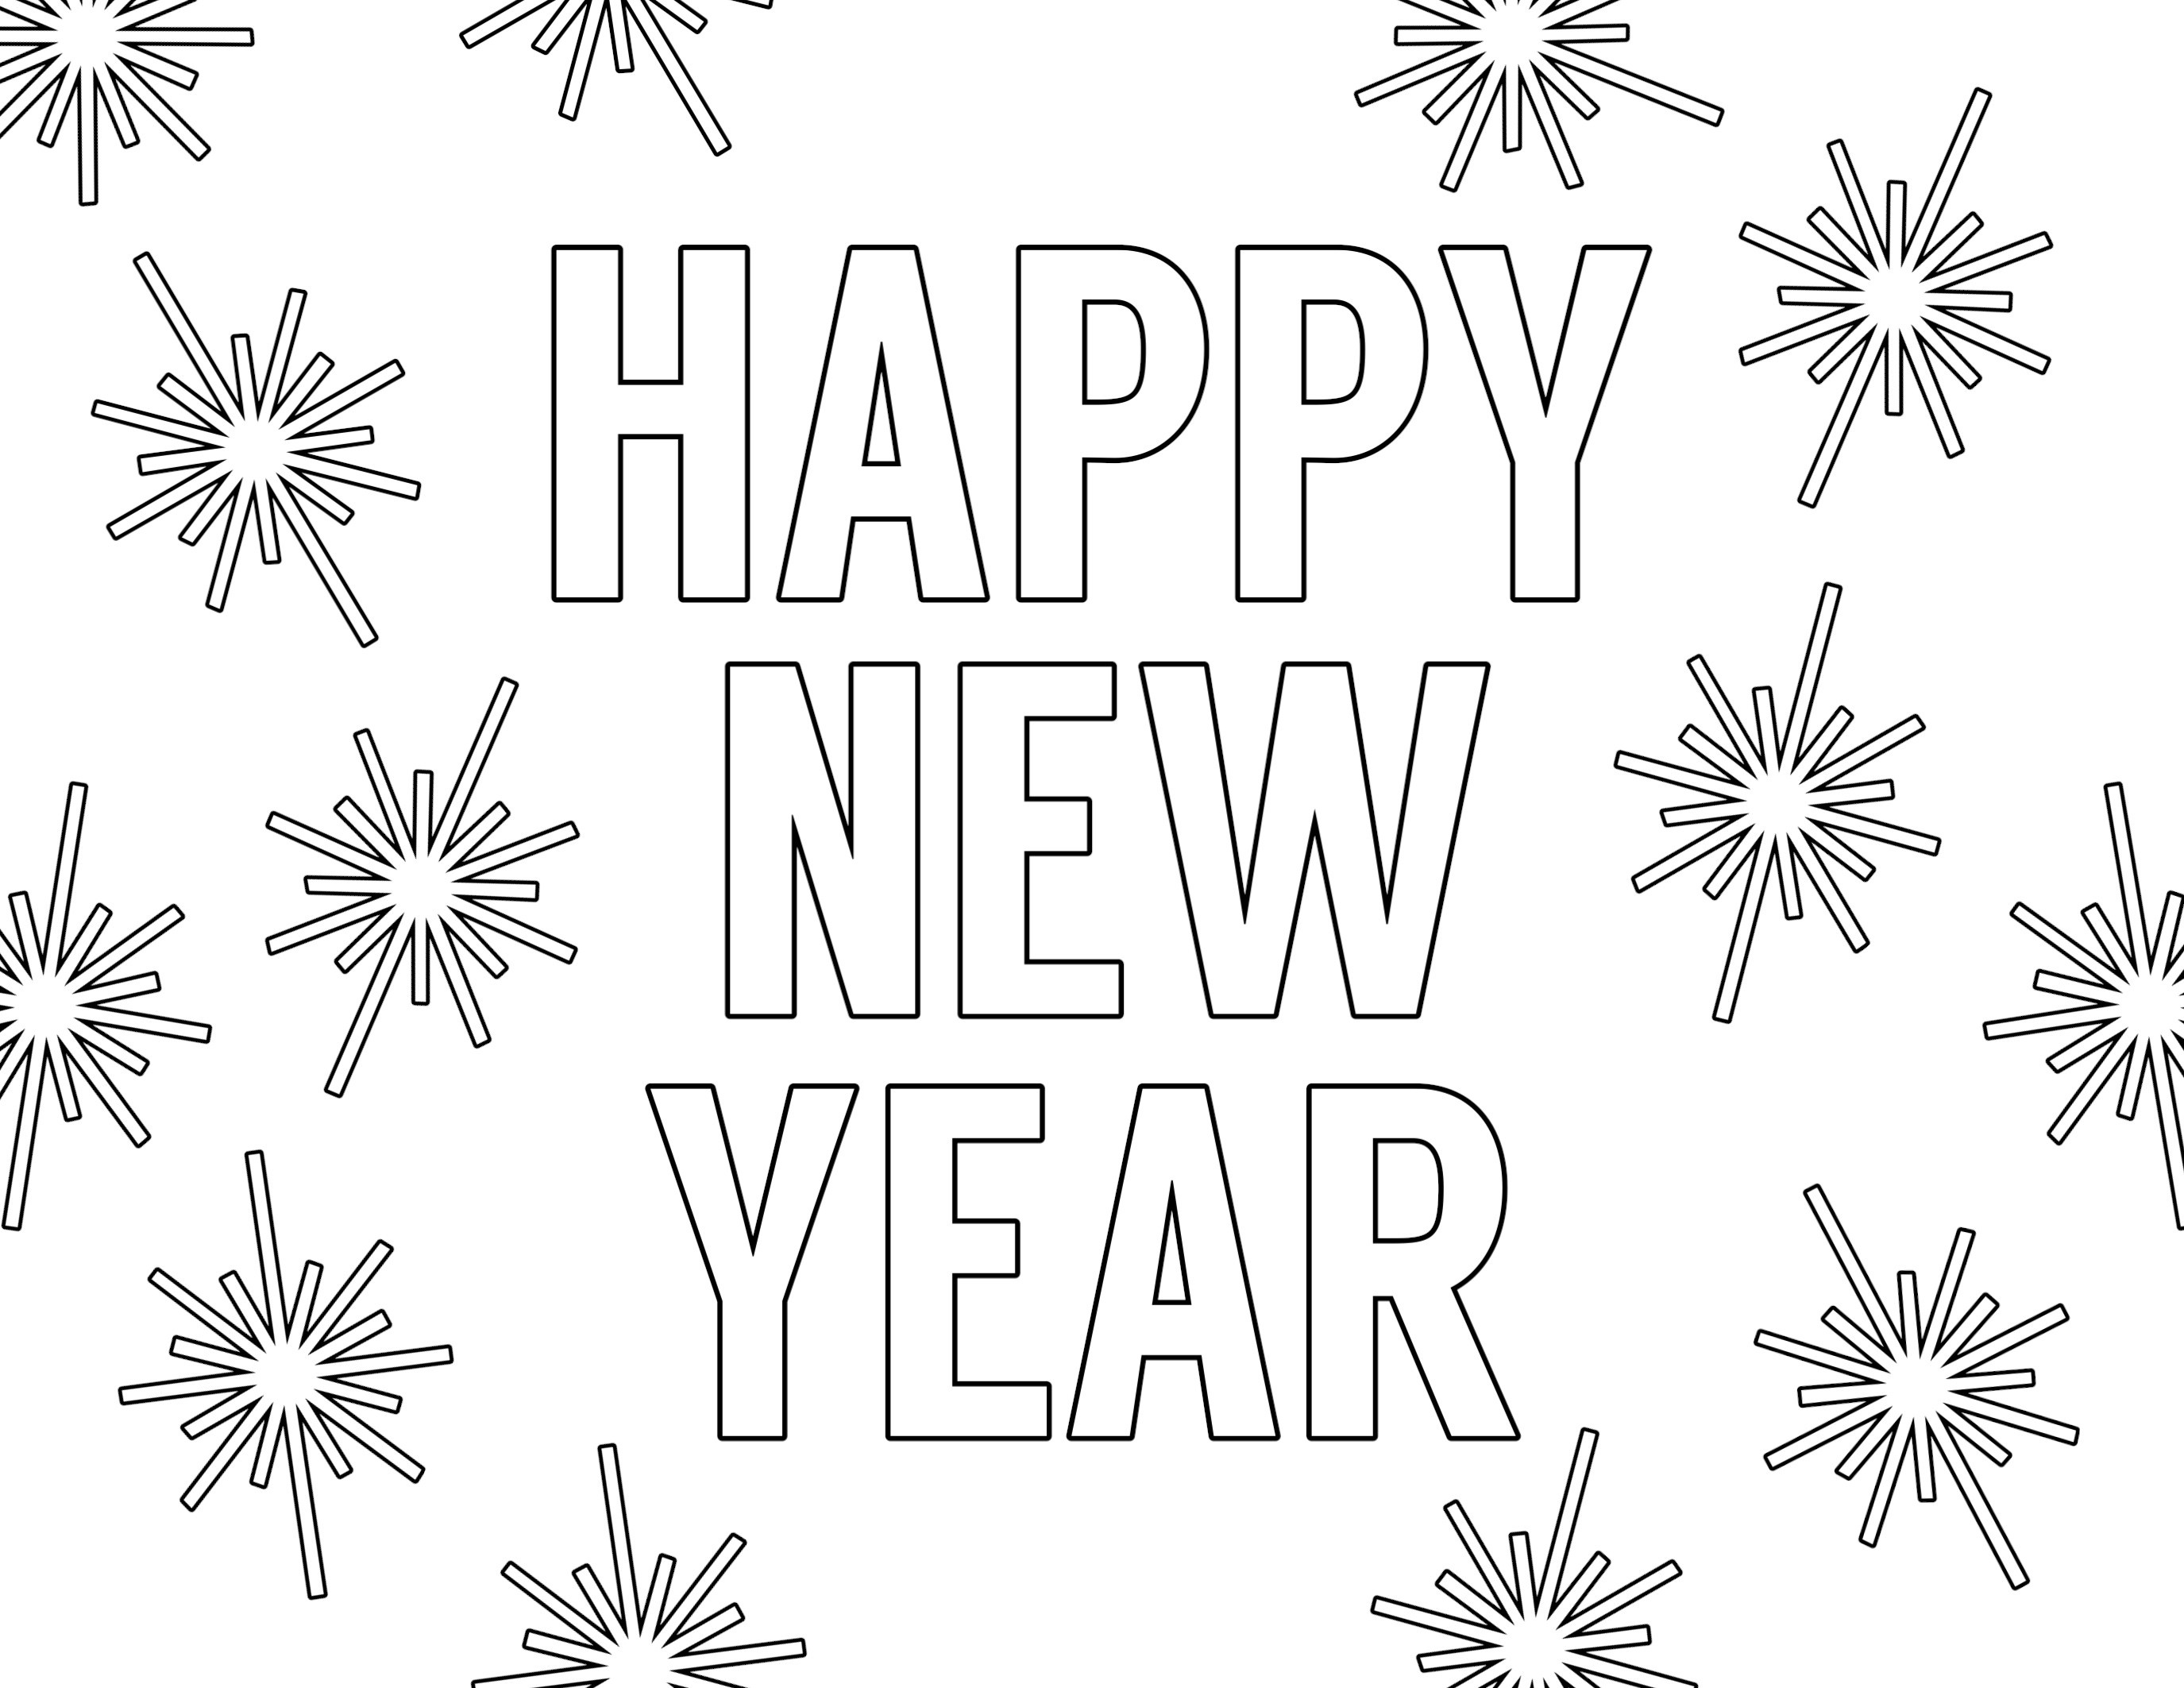 Happy New Year Coloring Pages Free Printable - Paper Trail Design - New Year Coloring Pages Free Printables